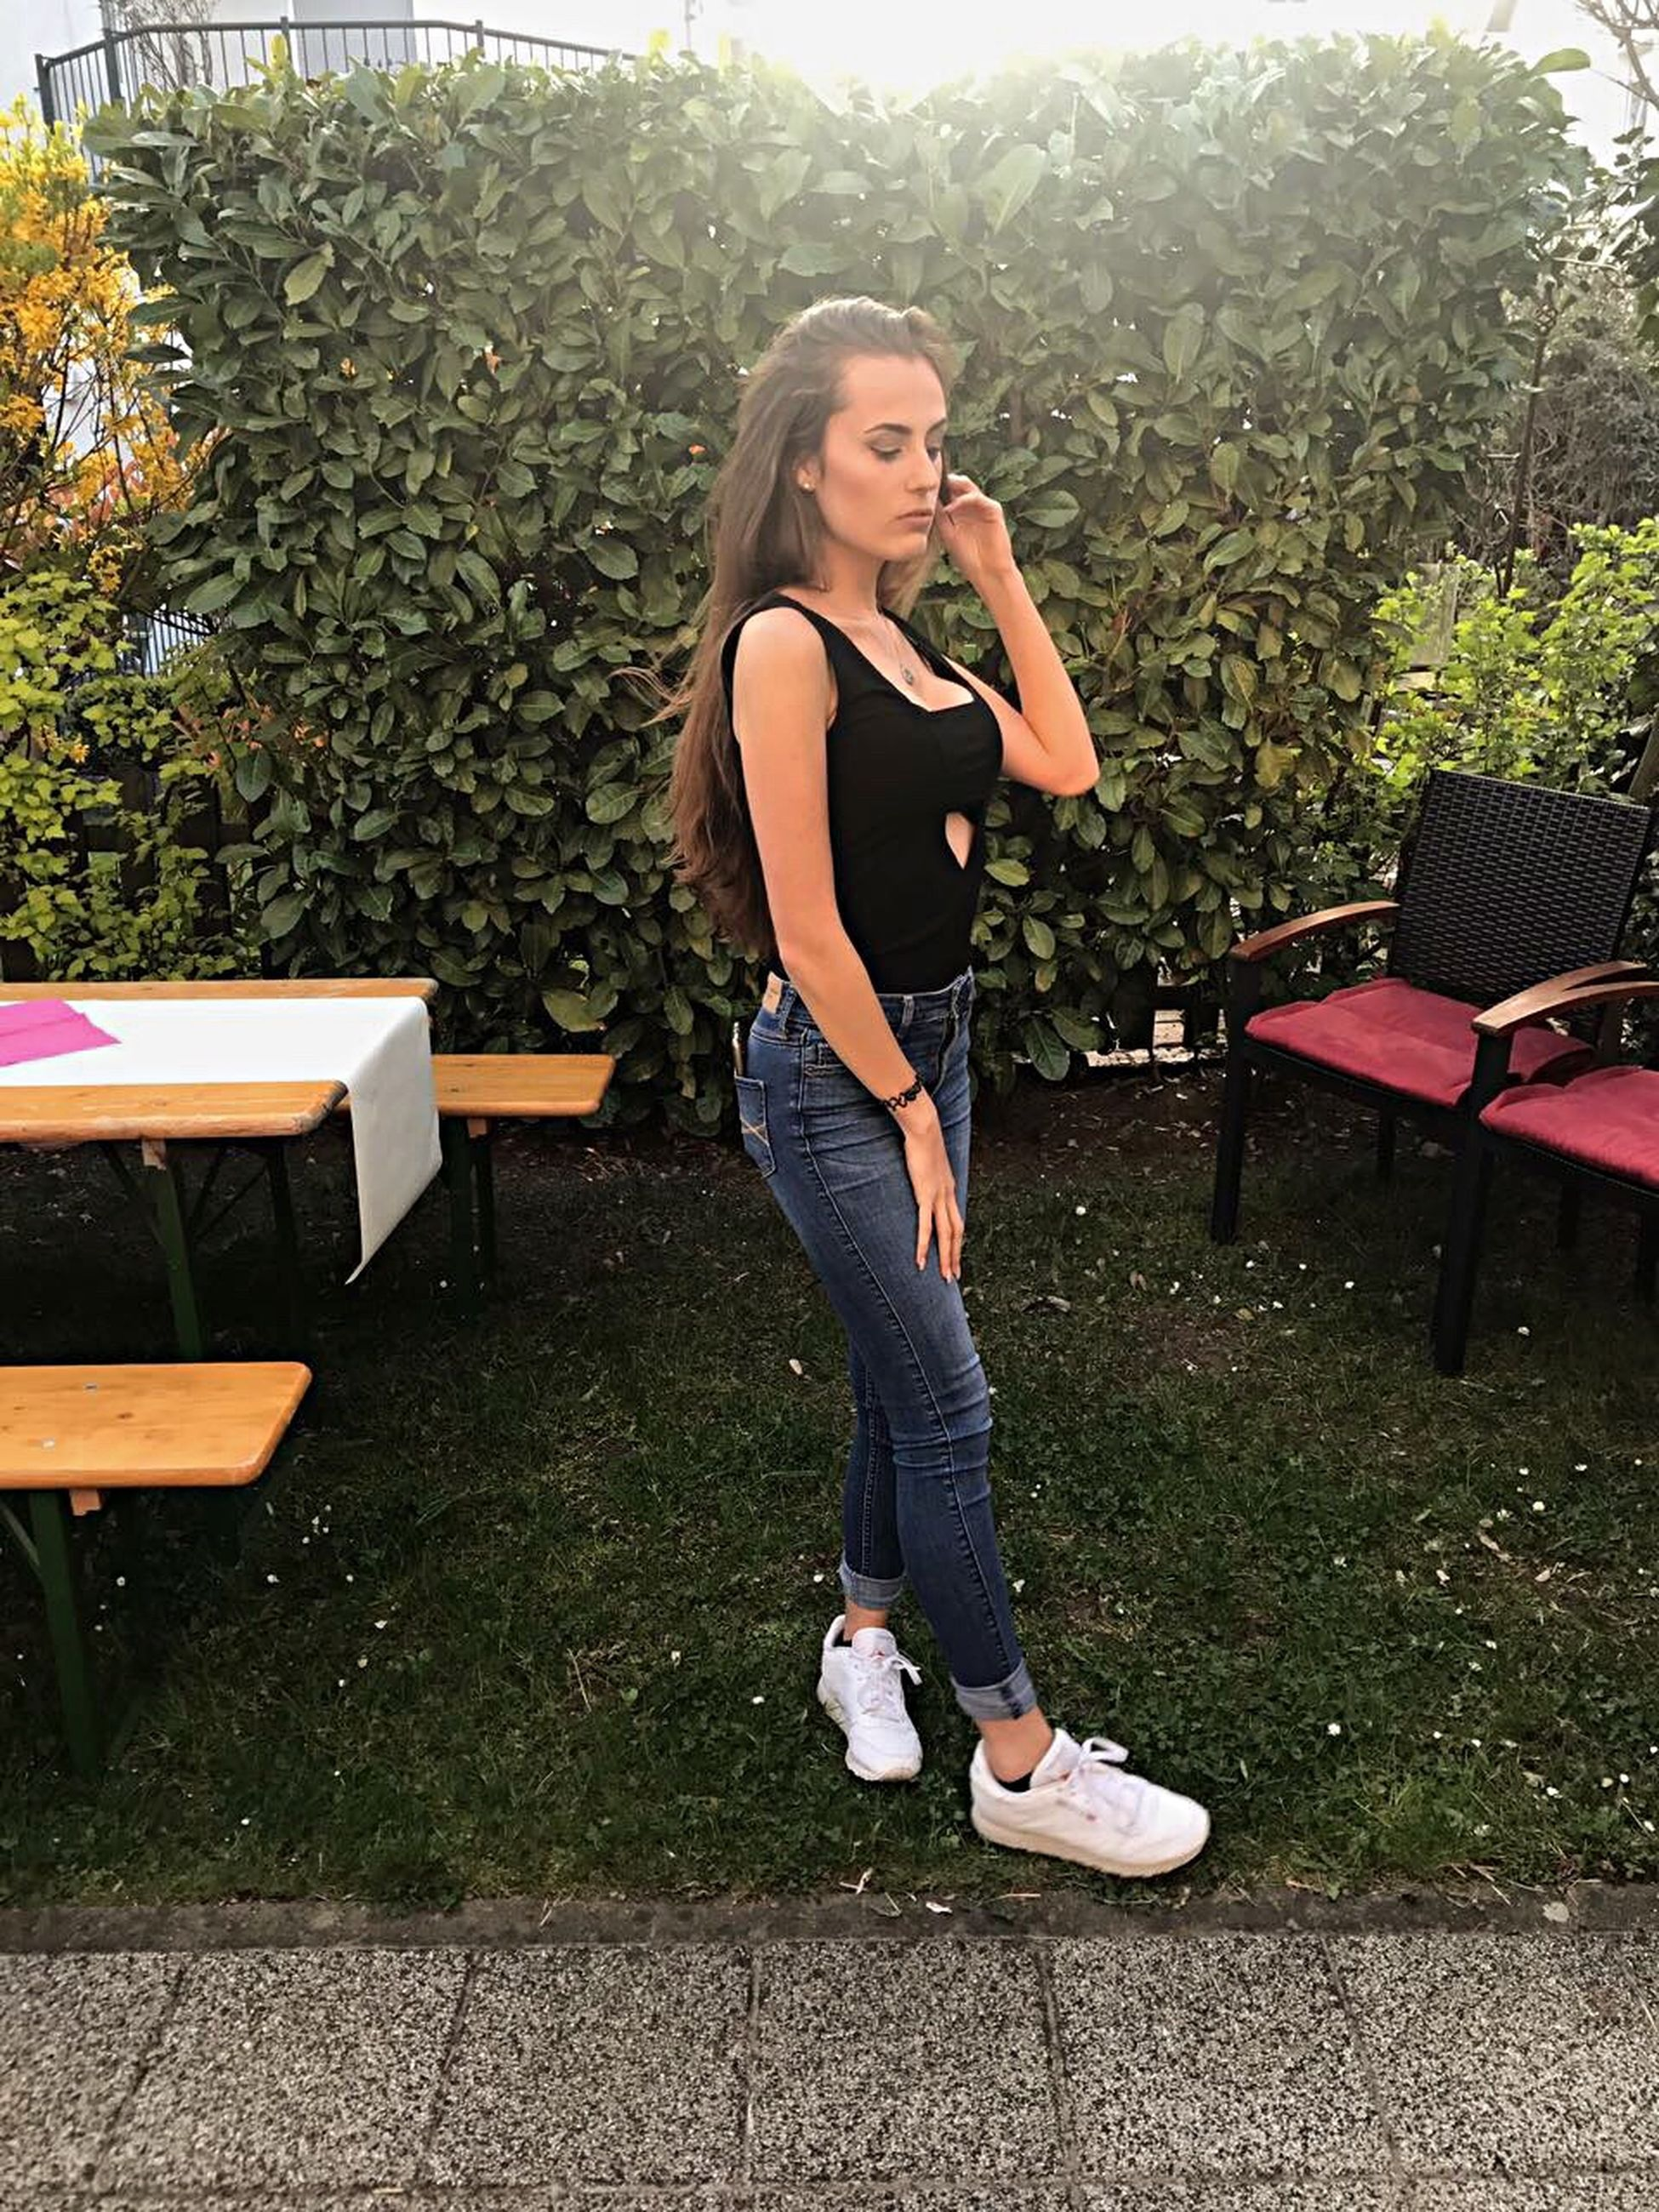 full length, casual clothing, side view, one person, one woman only, only women, outdoors, young adult, leisure activity, one young woman only, beauty, day, adults only, young women, people, adult, connection, nature